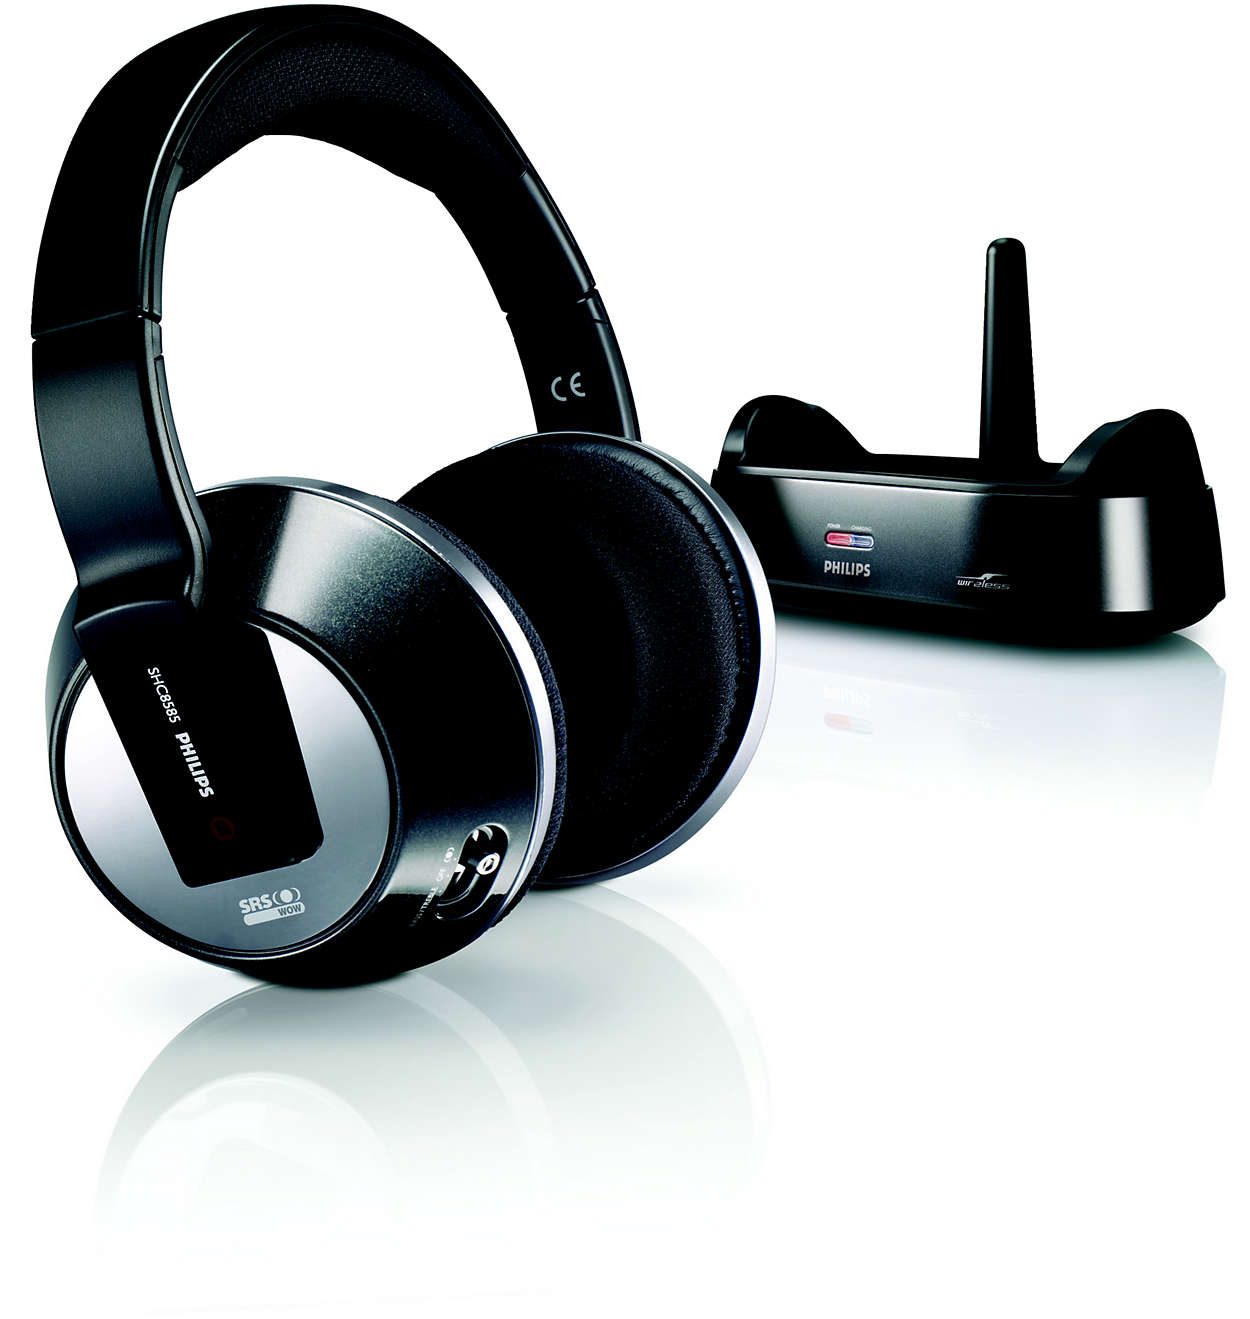 wireless home cinema headphones shc8585 00 philips. Black Bedroom Furniture Sets. Home Design Ideas